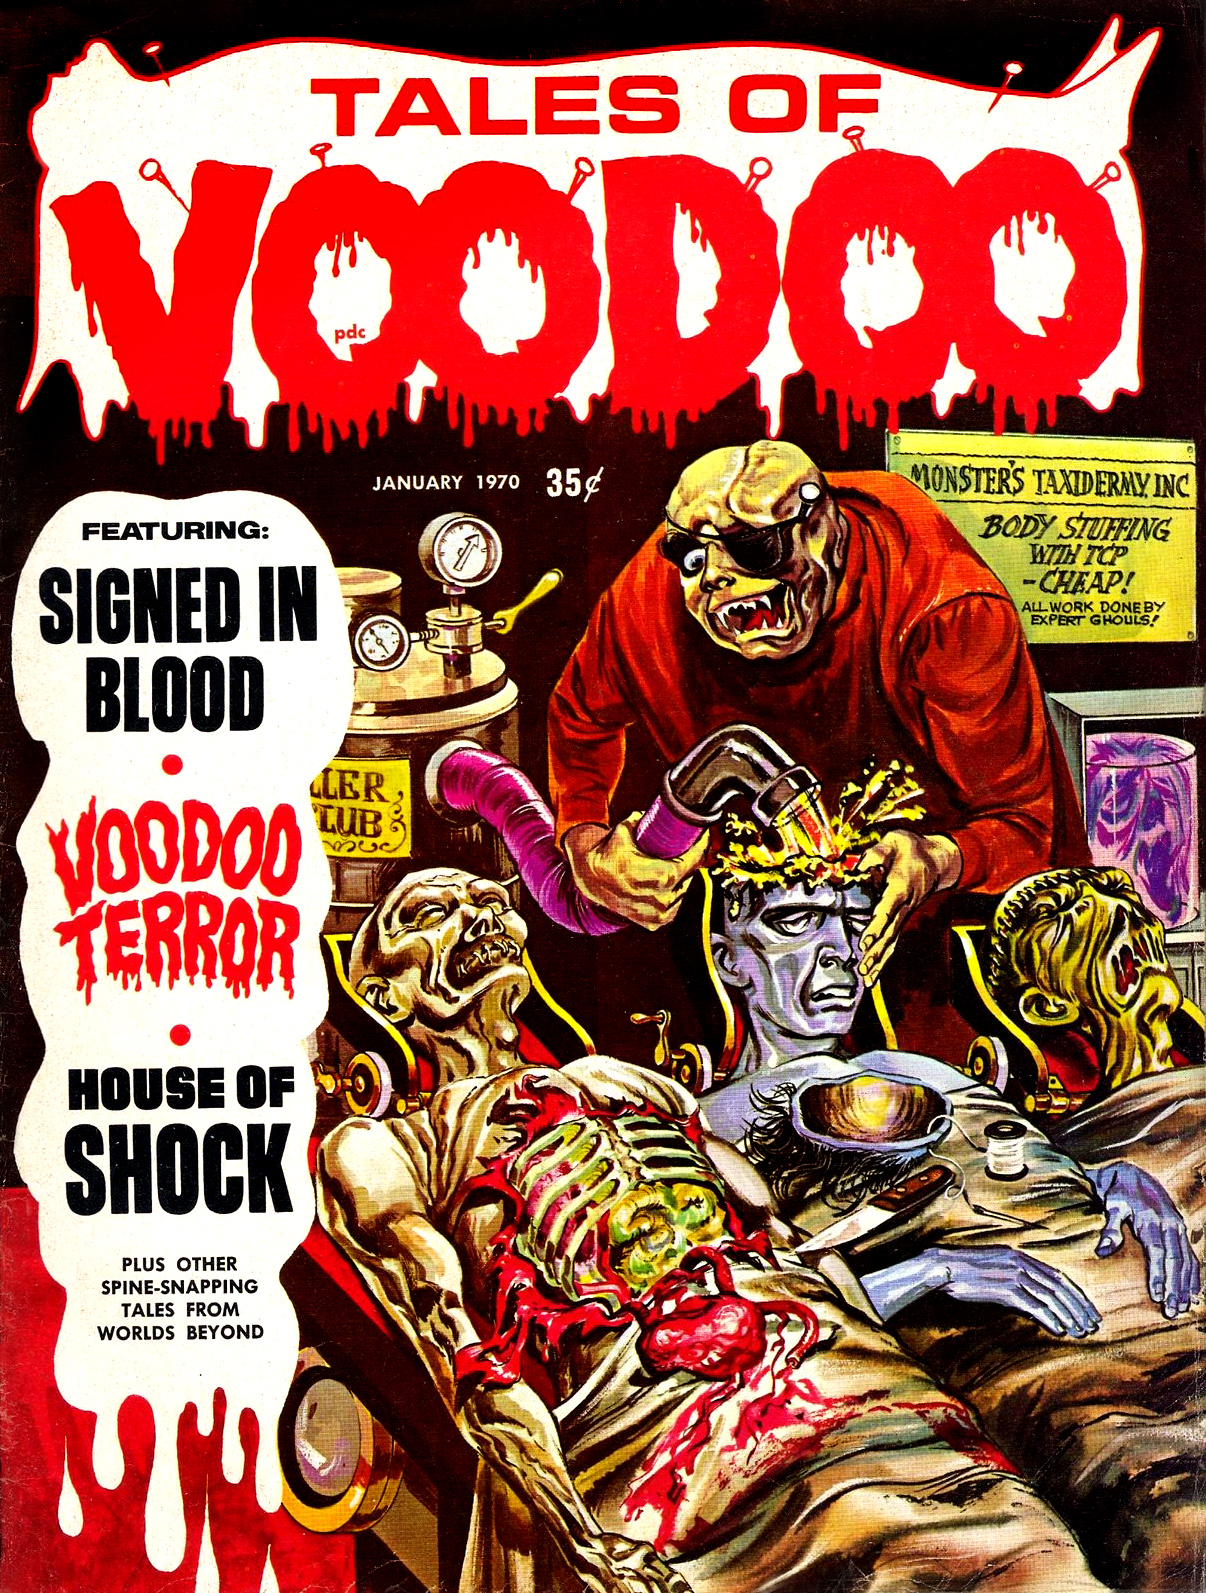 Tales of Voodoo Vol. 3 #1 (Eerie Publications 1970)